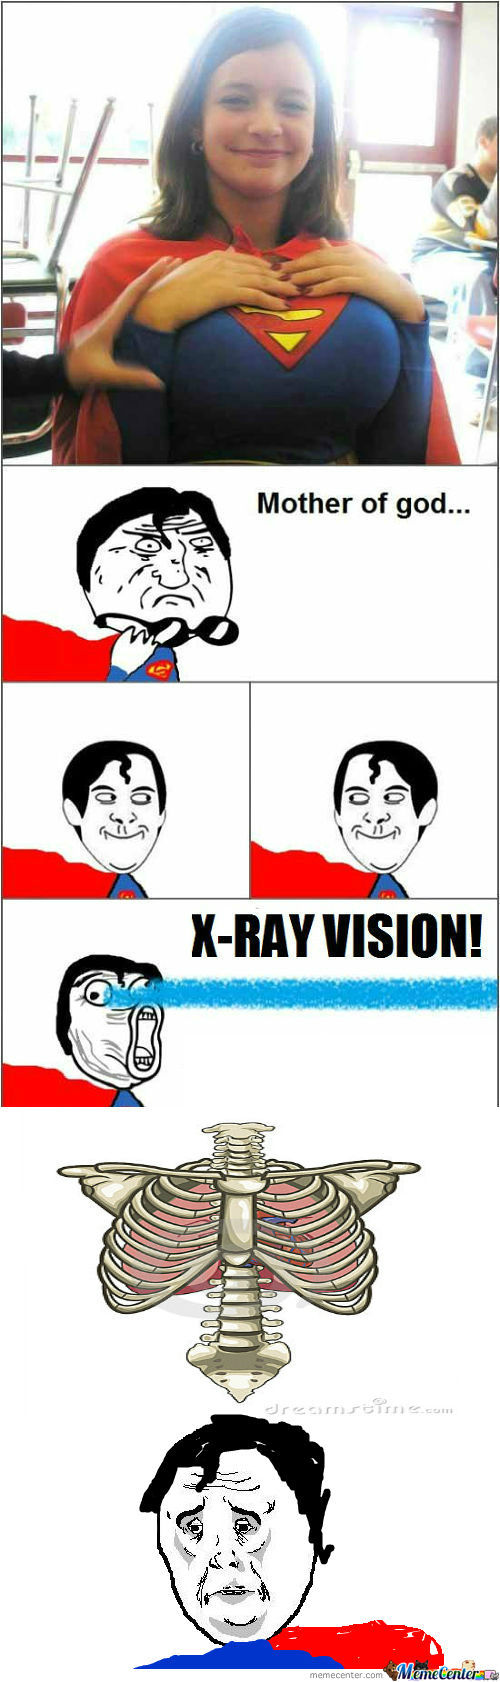 [RMX] [RMX] Super Loves His X-Ray Vision